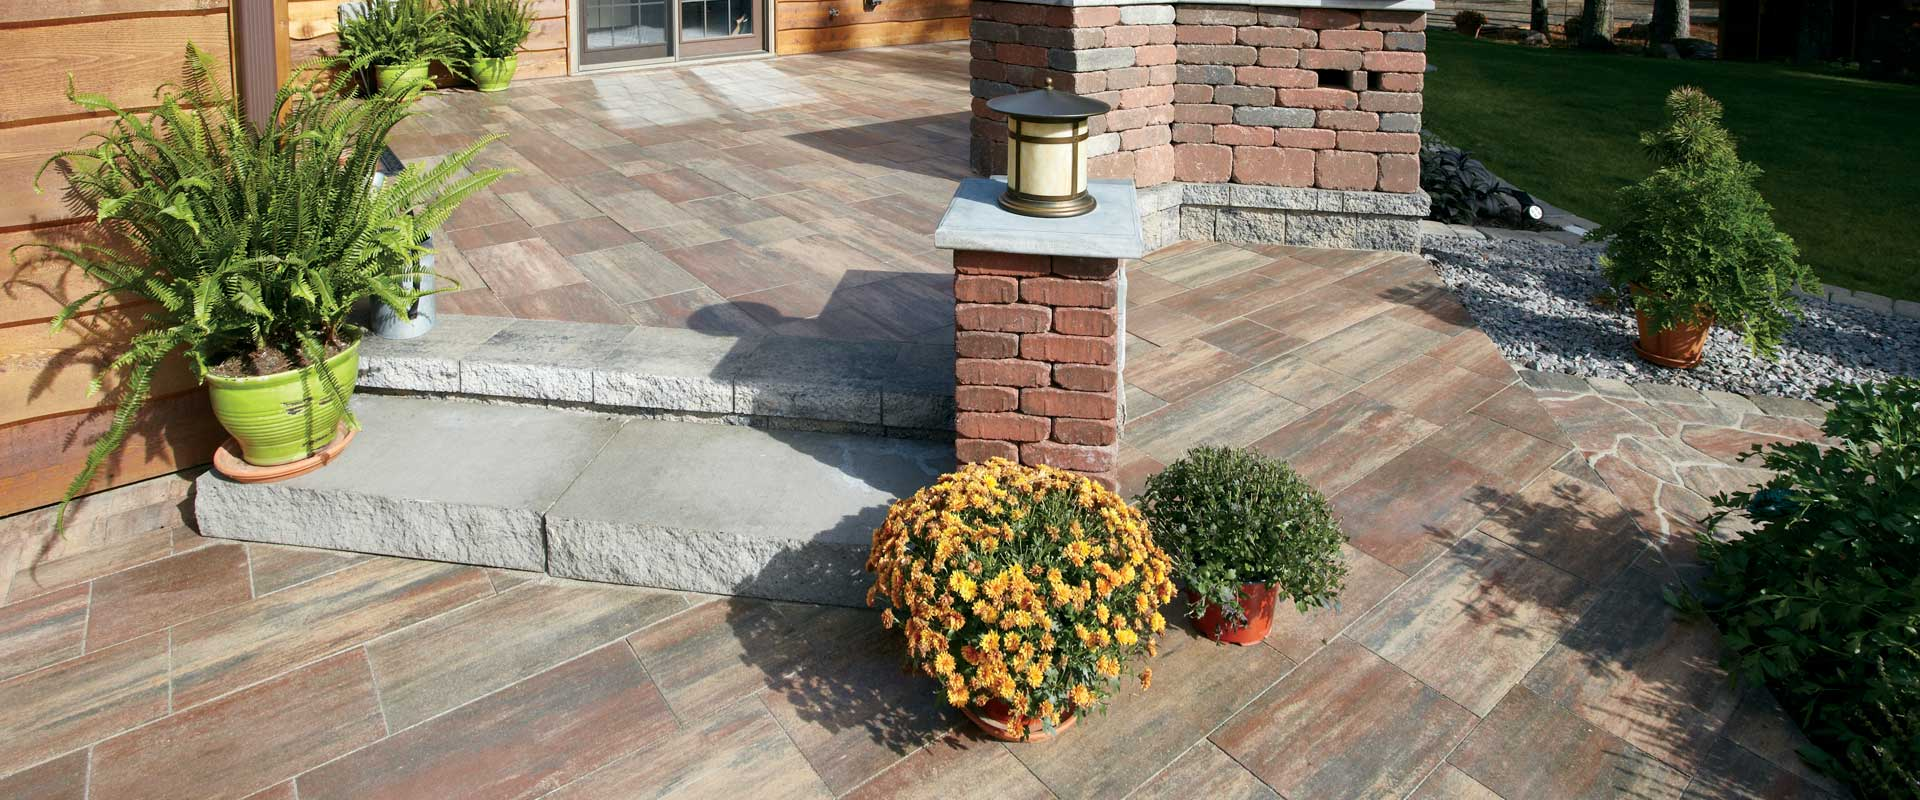 pin concrete stone stones with patio paver pavers precast designs